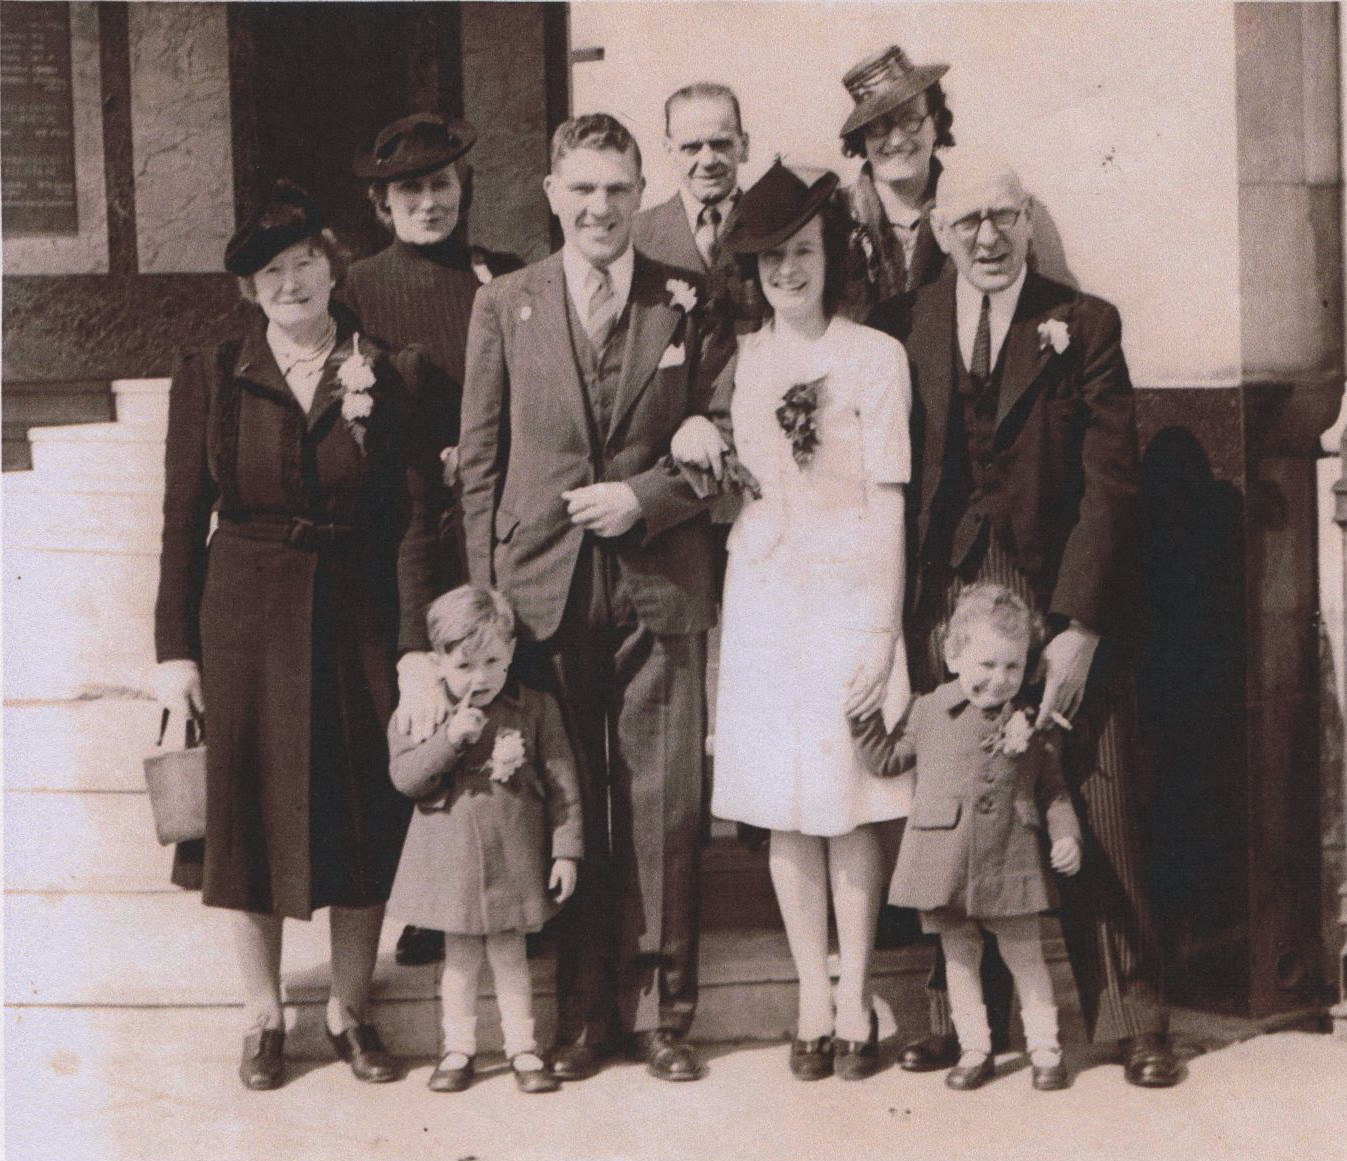 John and Kathleen's wedding, April 6, 1946